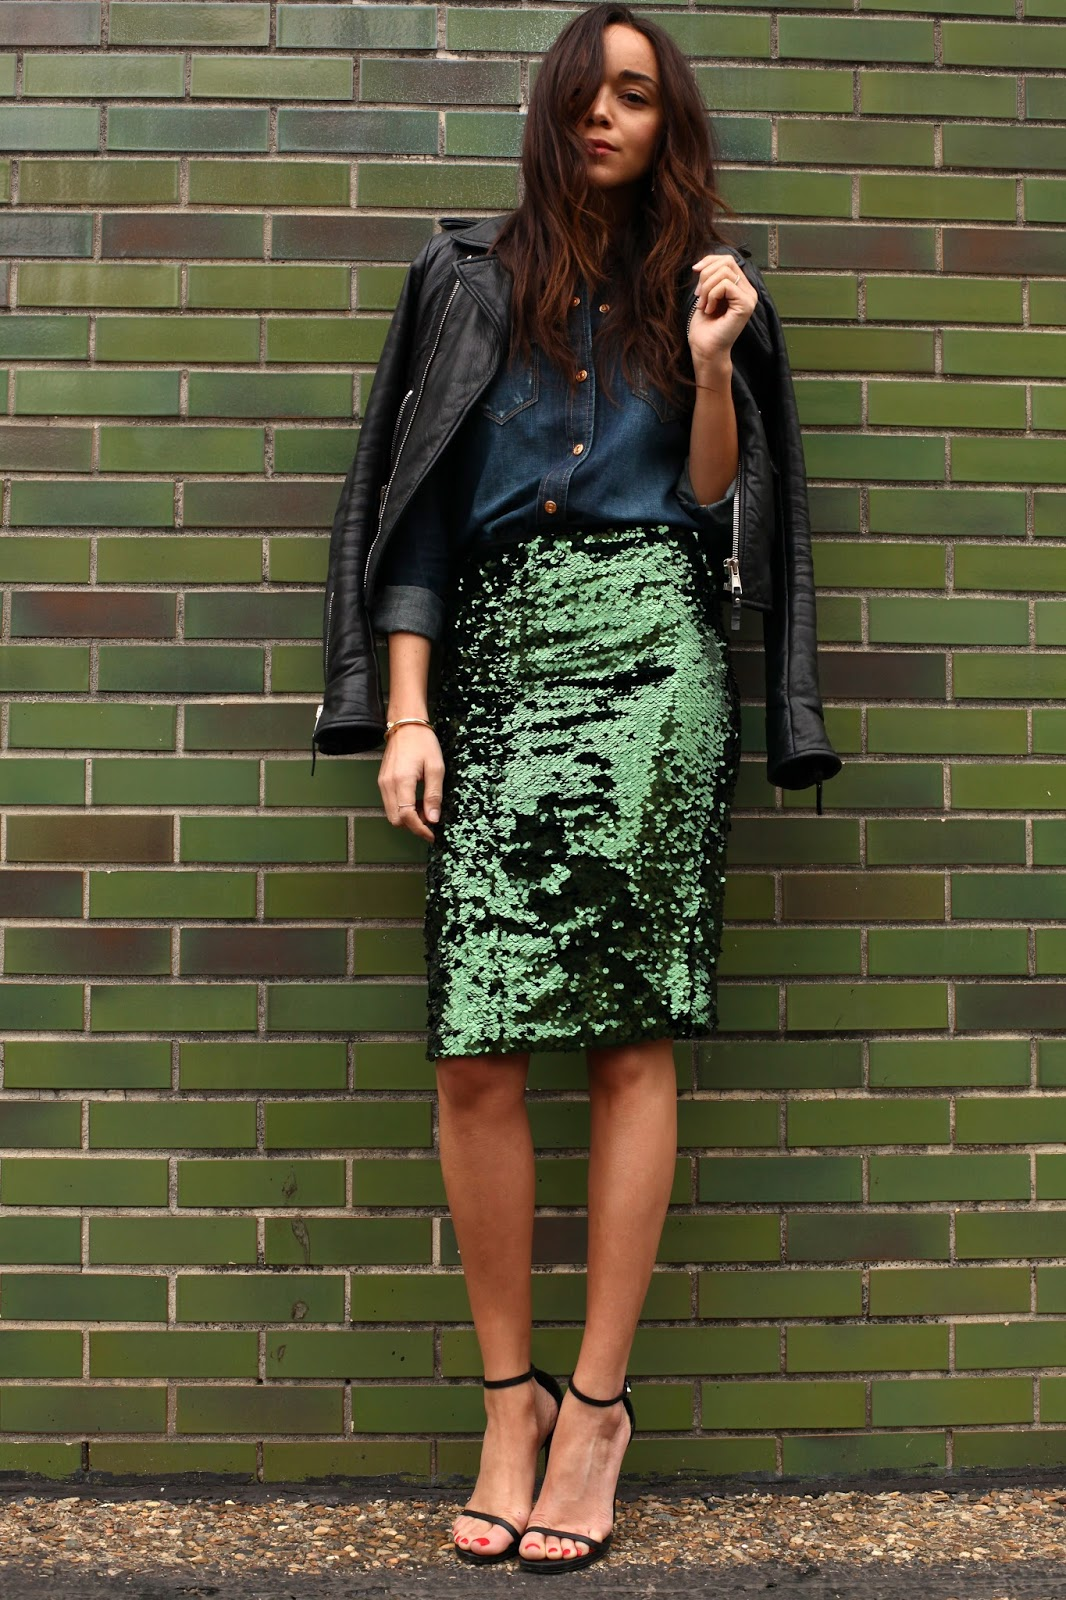 Ashley Is Wearing Green Sequin Skirt From Topshop, Blue Denim Shirt From 7 For All Mankind, Shoes From Saint Laurent And Leather Jacket Balenciaga